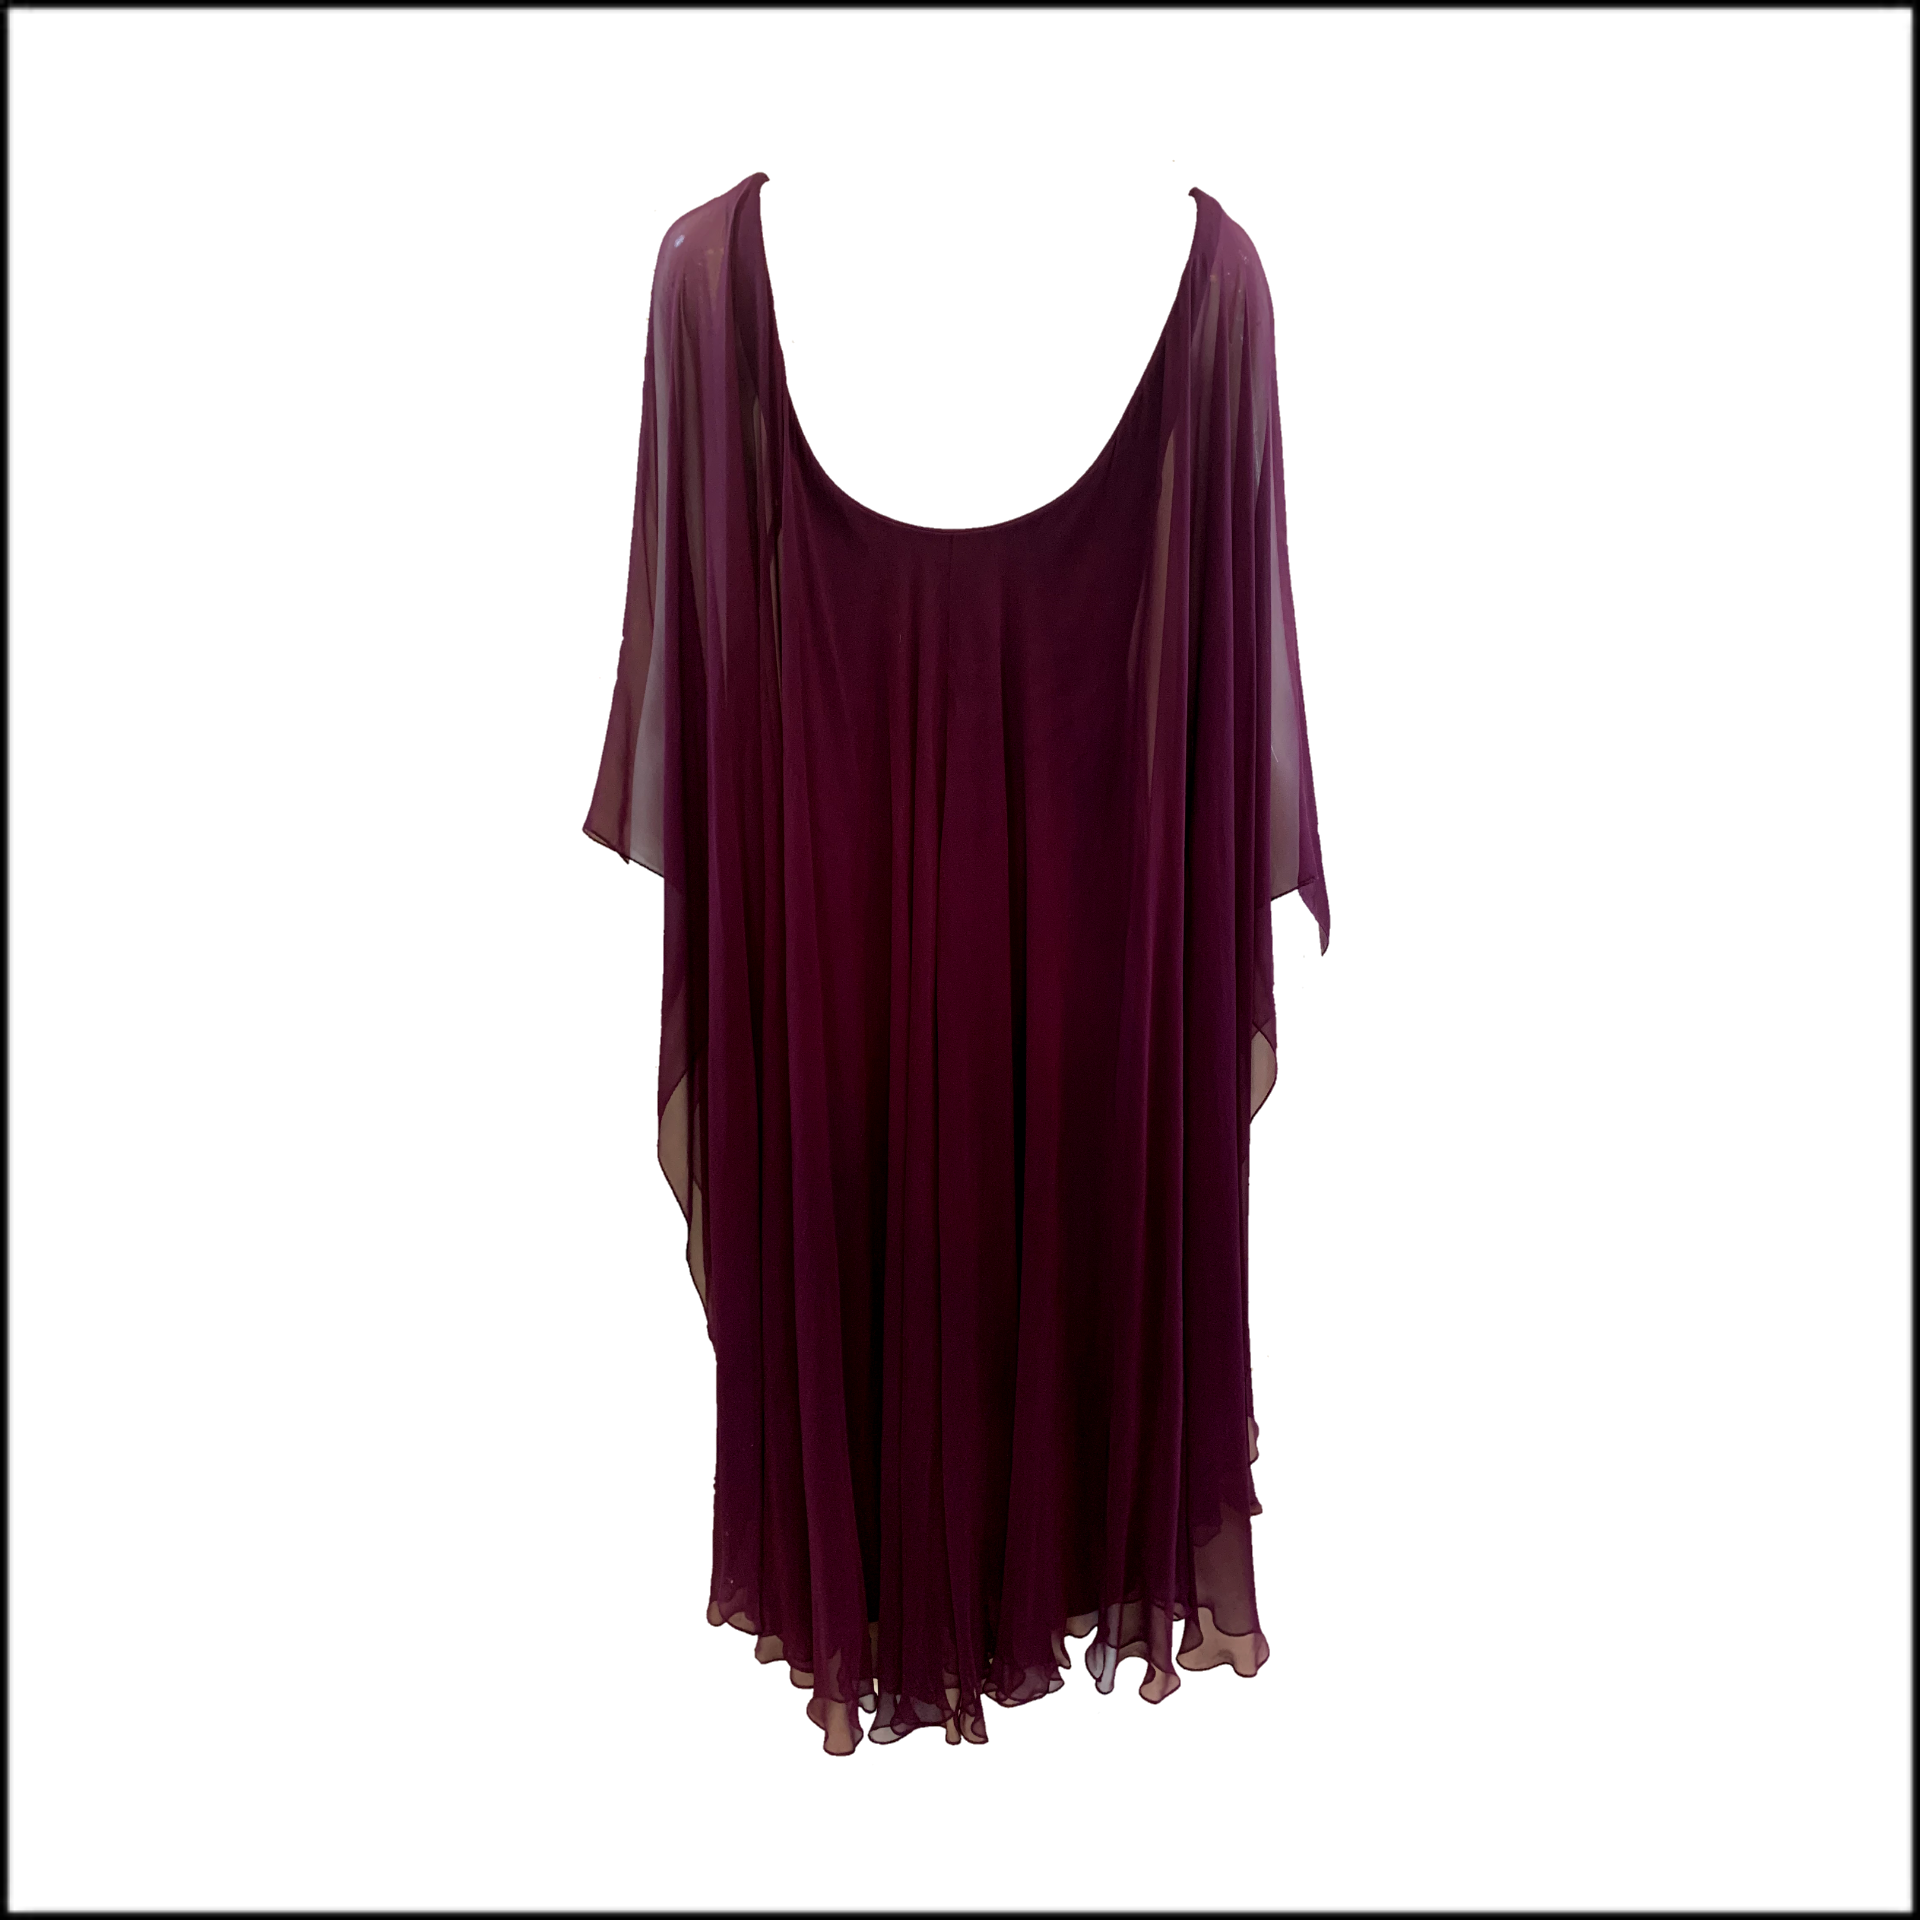 Halston 70s Purple Chiffon and Jersey Studio 54 Dress  BACK 3 of 3